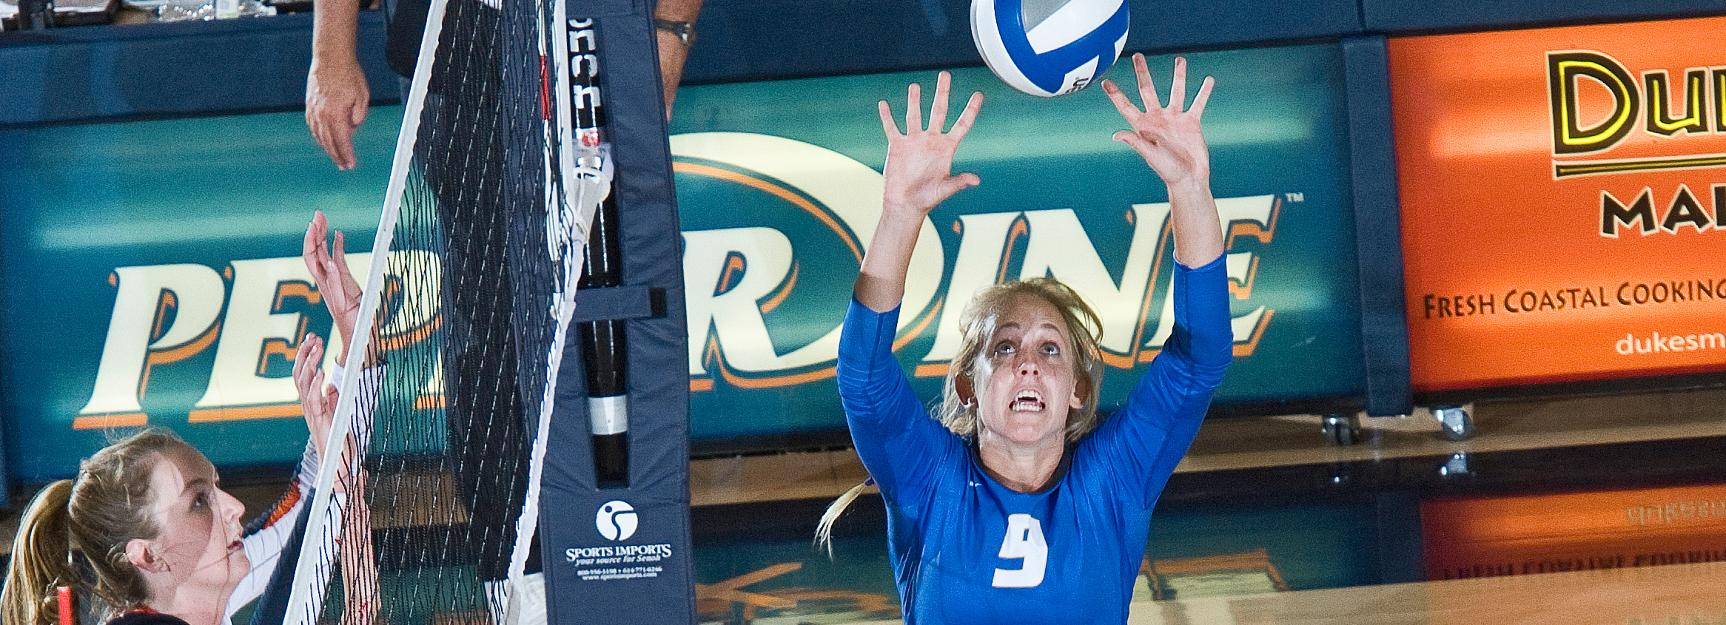 UCSB Finishes Sac. State Invitational 2-1, Santi & Taylor Named All-Tournament